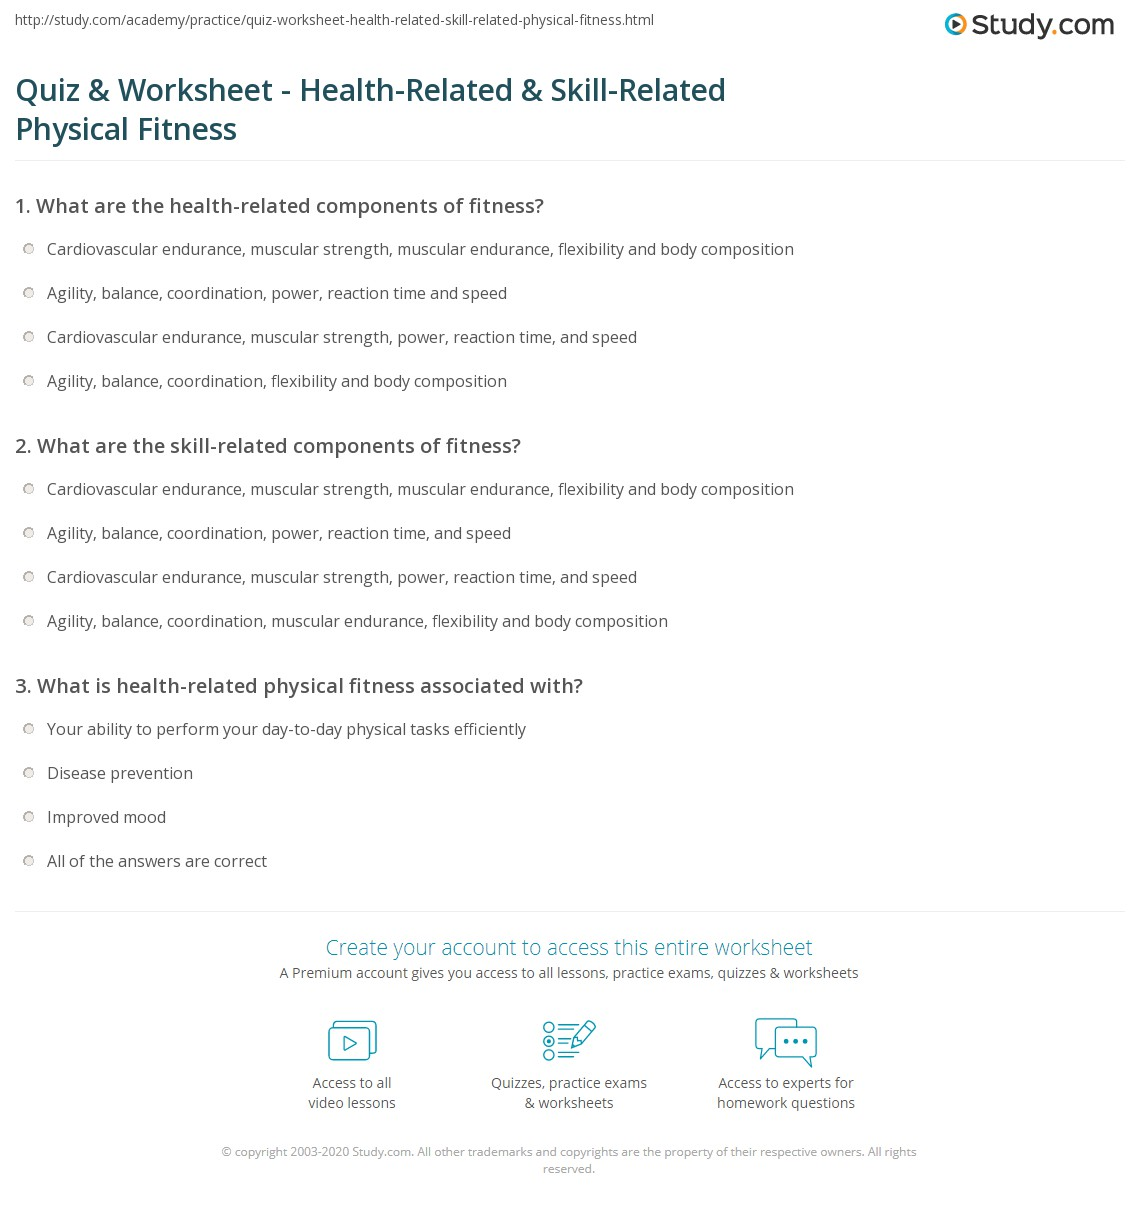 quiz worksheet health related skill related physical fitness. Black Bedroom Furniture Sets. Home Design Ideas